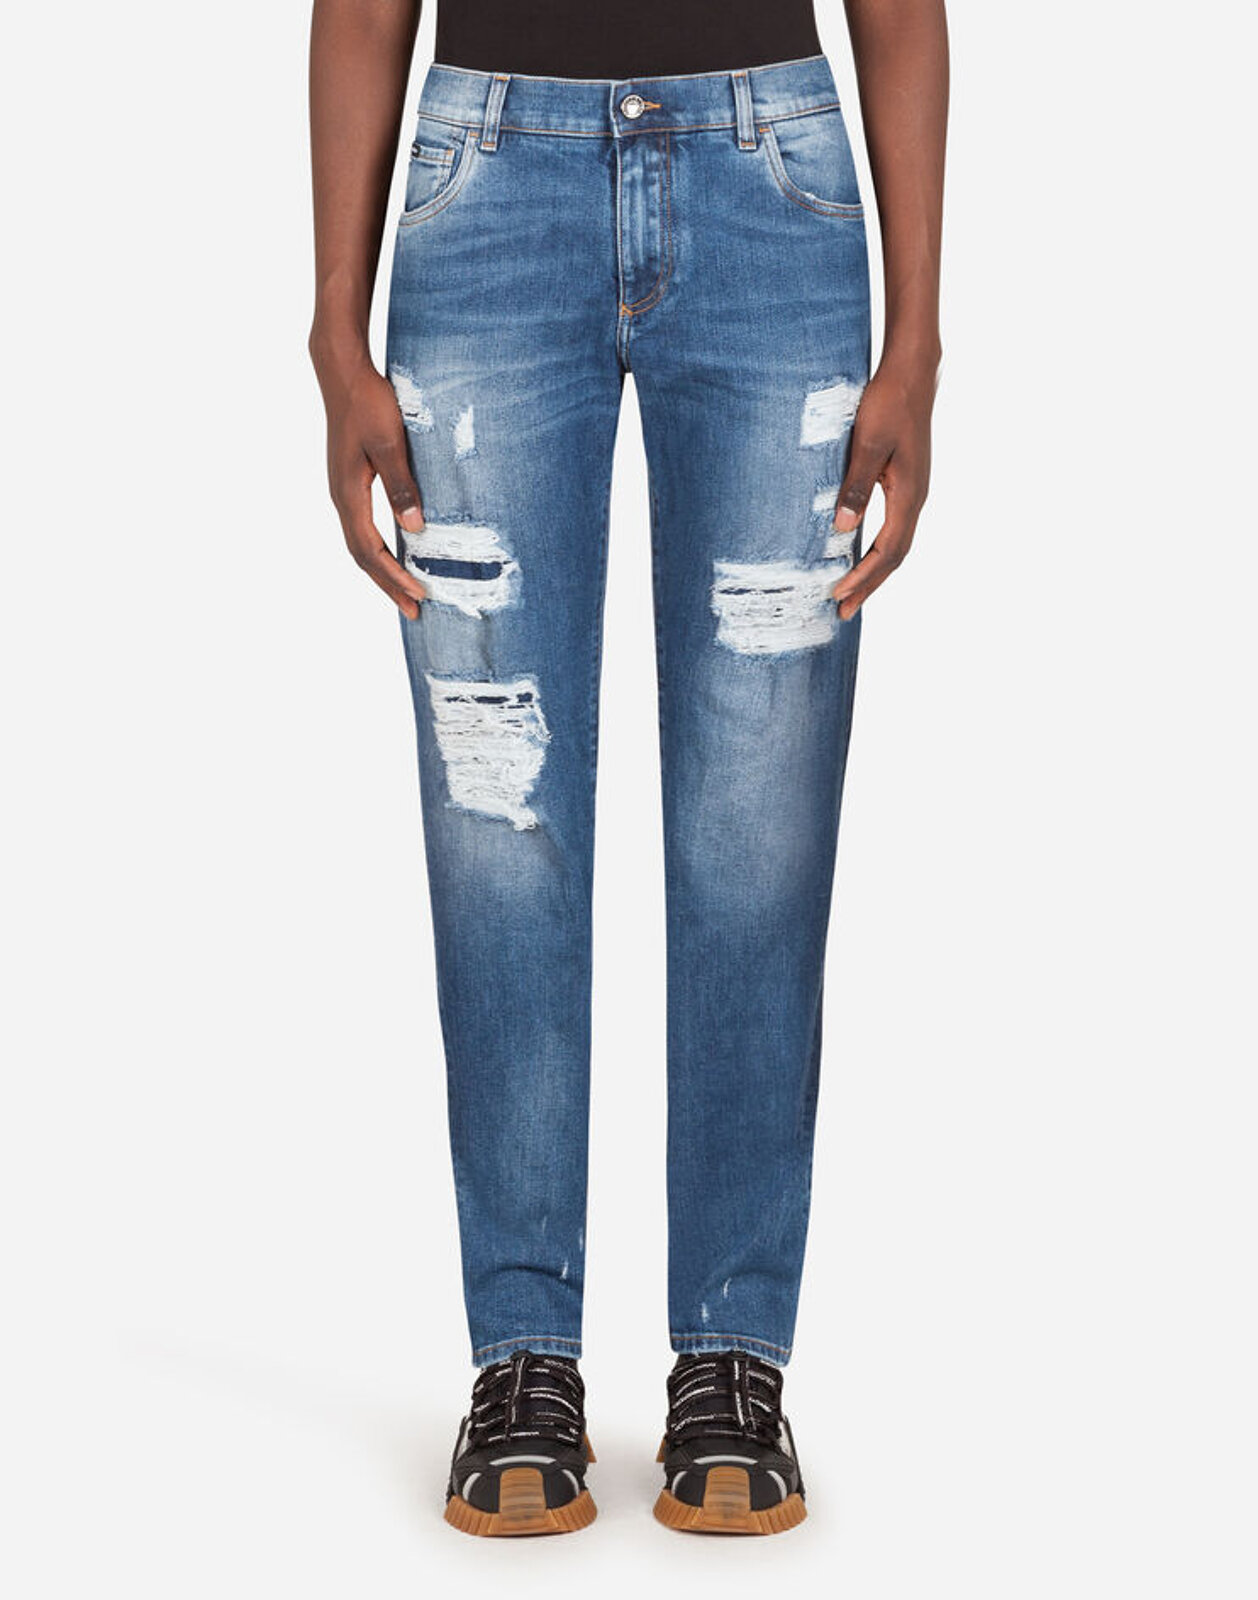 Washed Blue Slim Stretch Jeans With Tears - Dolce & Gabbana